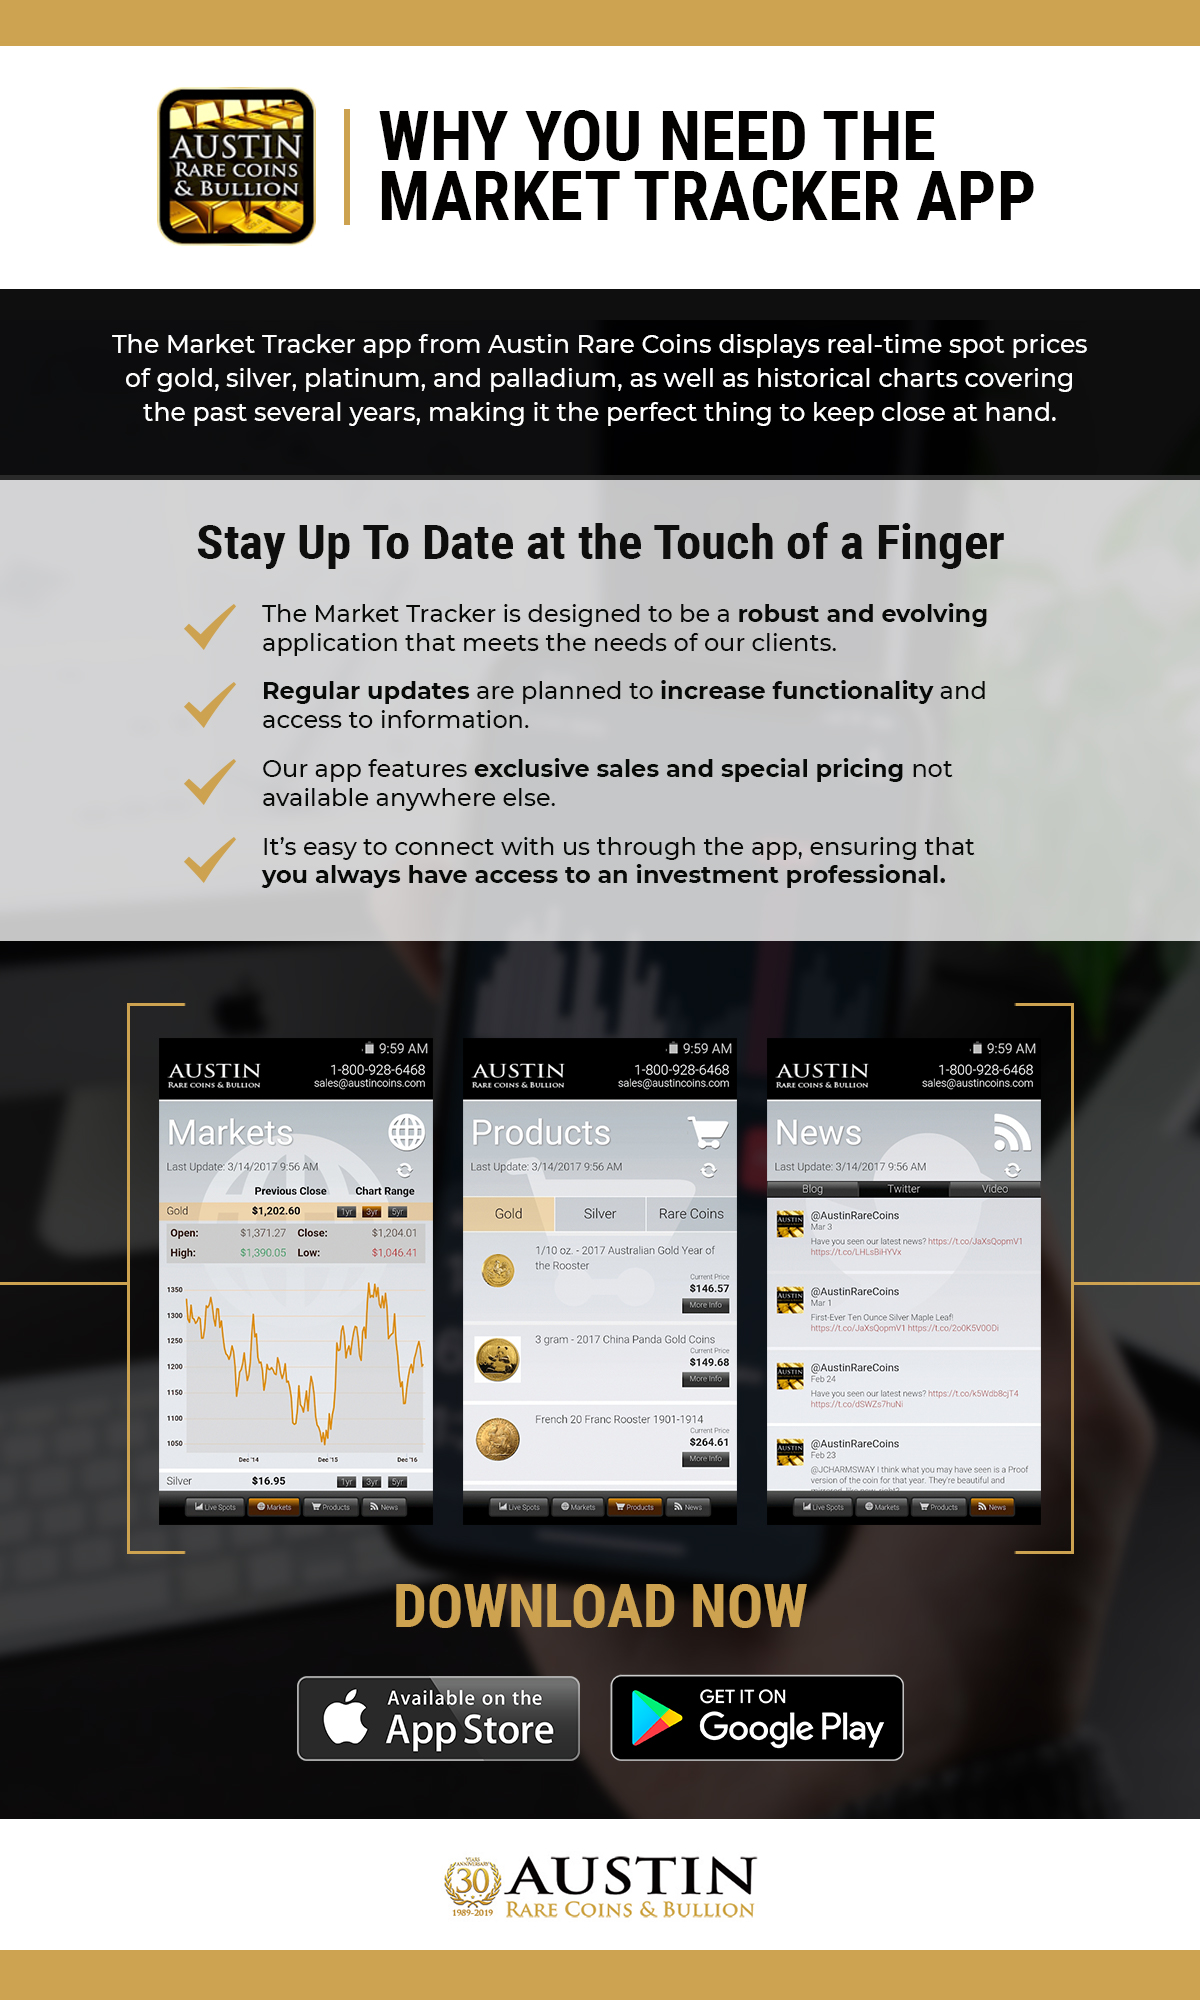 Why You Need the Market Tracker App